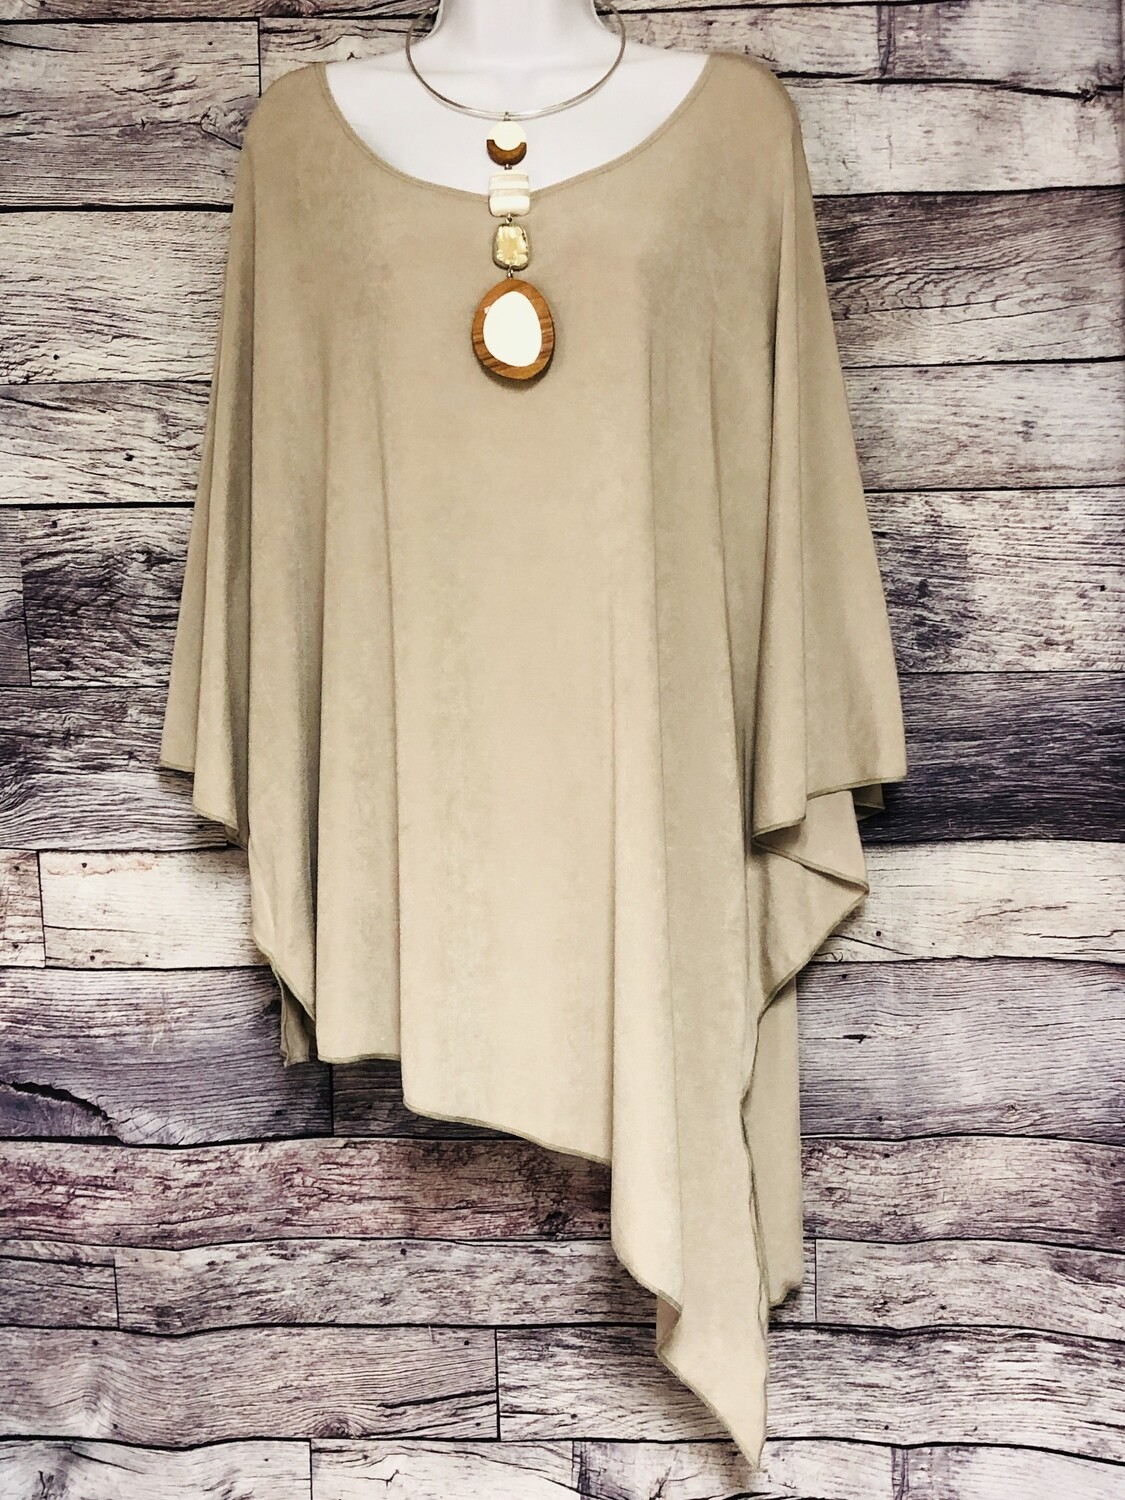 """New CHICOS """"Travelers"""" Asymetrical Top in Mushroom Size 4 (20/22) $89"""